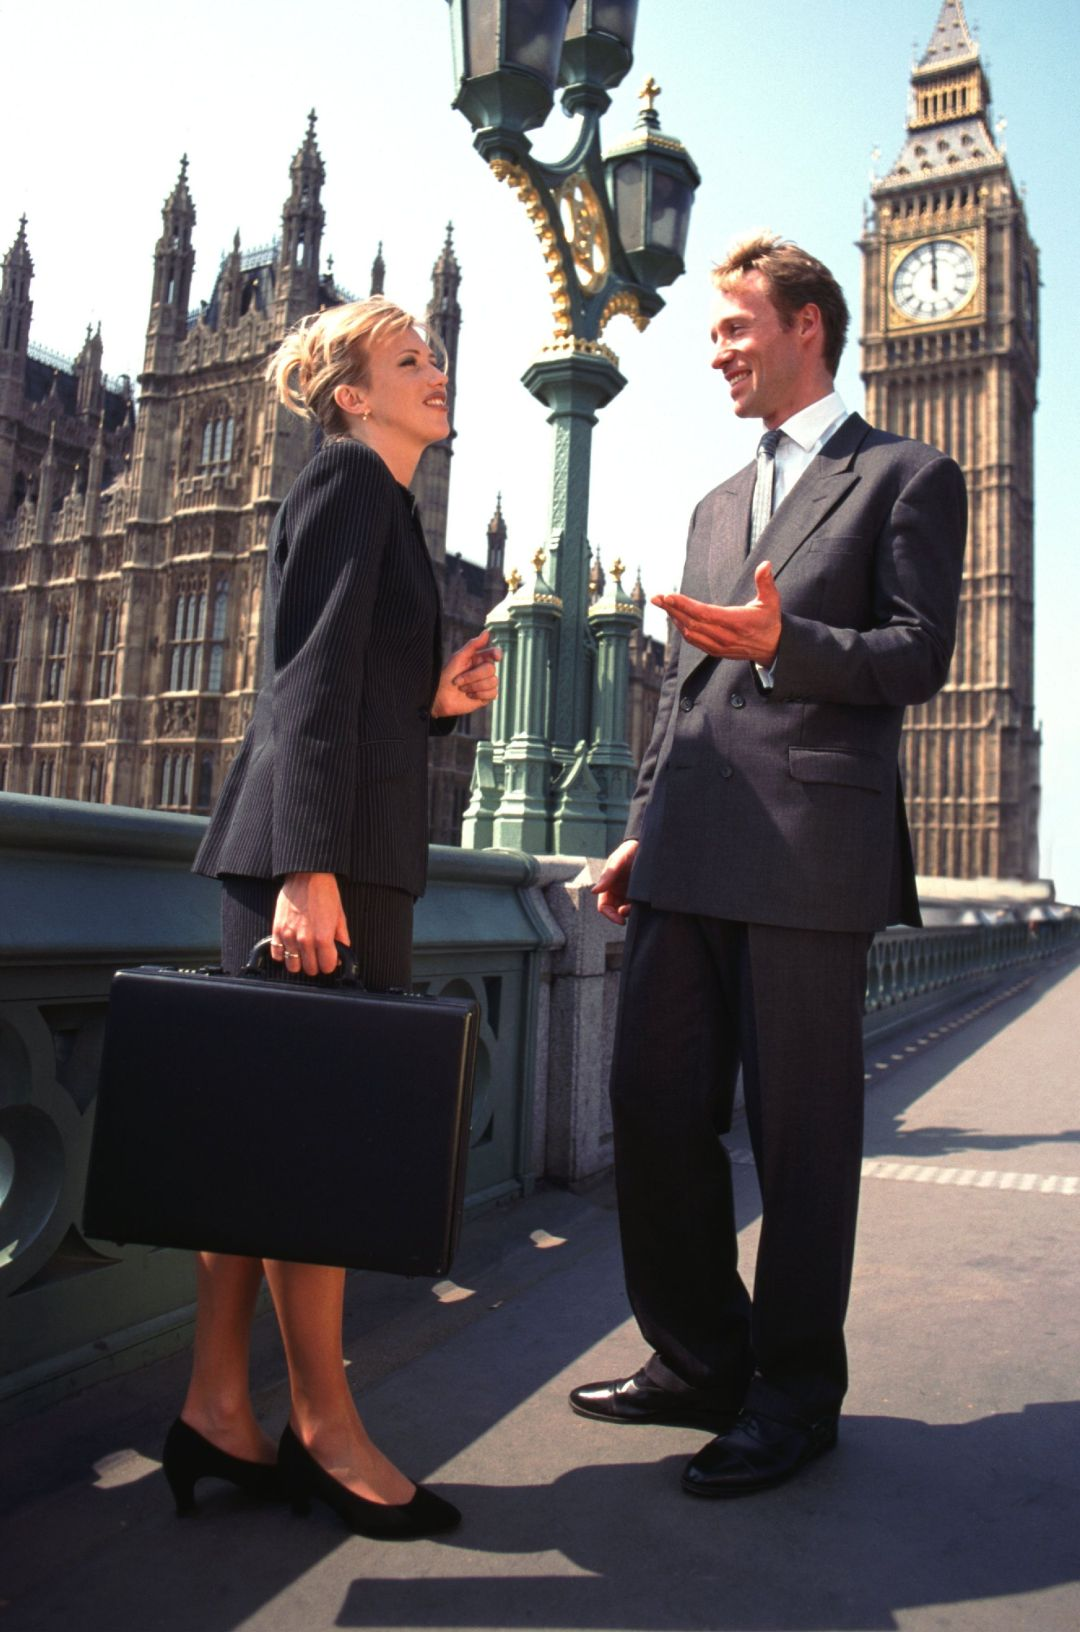 England, London, Businesspeople talking, smiling